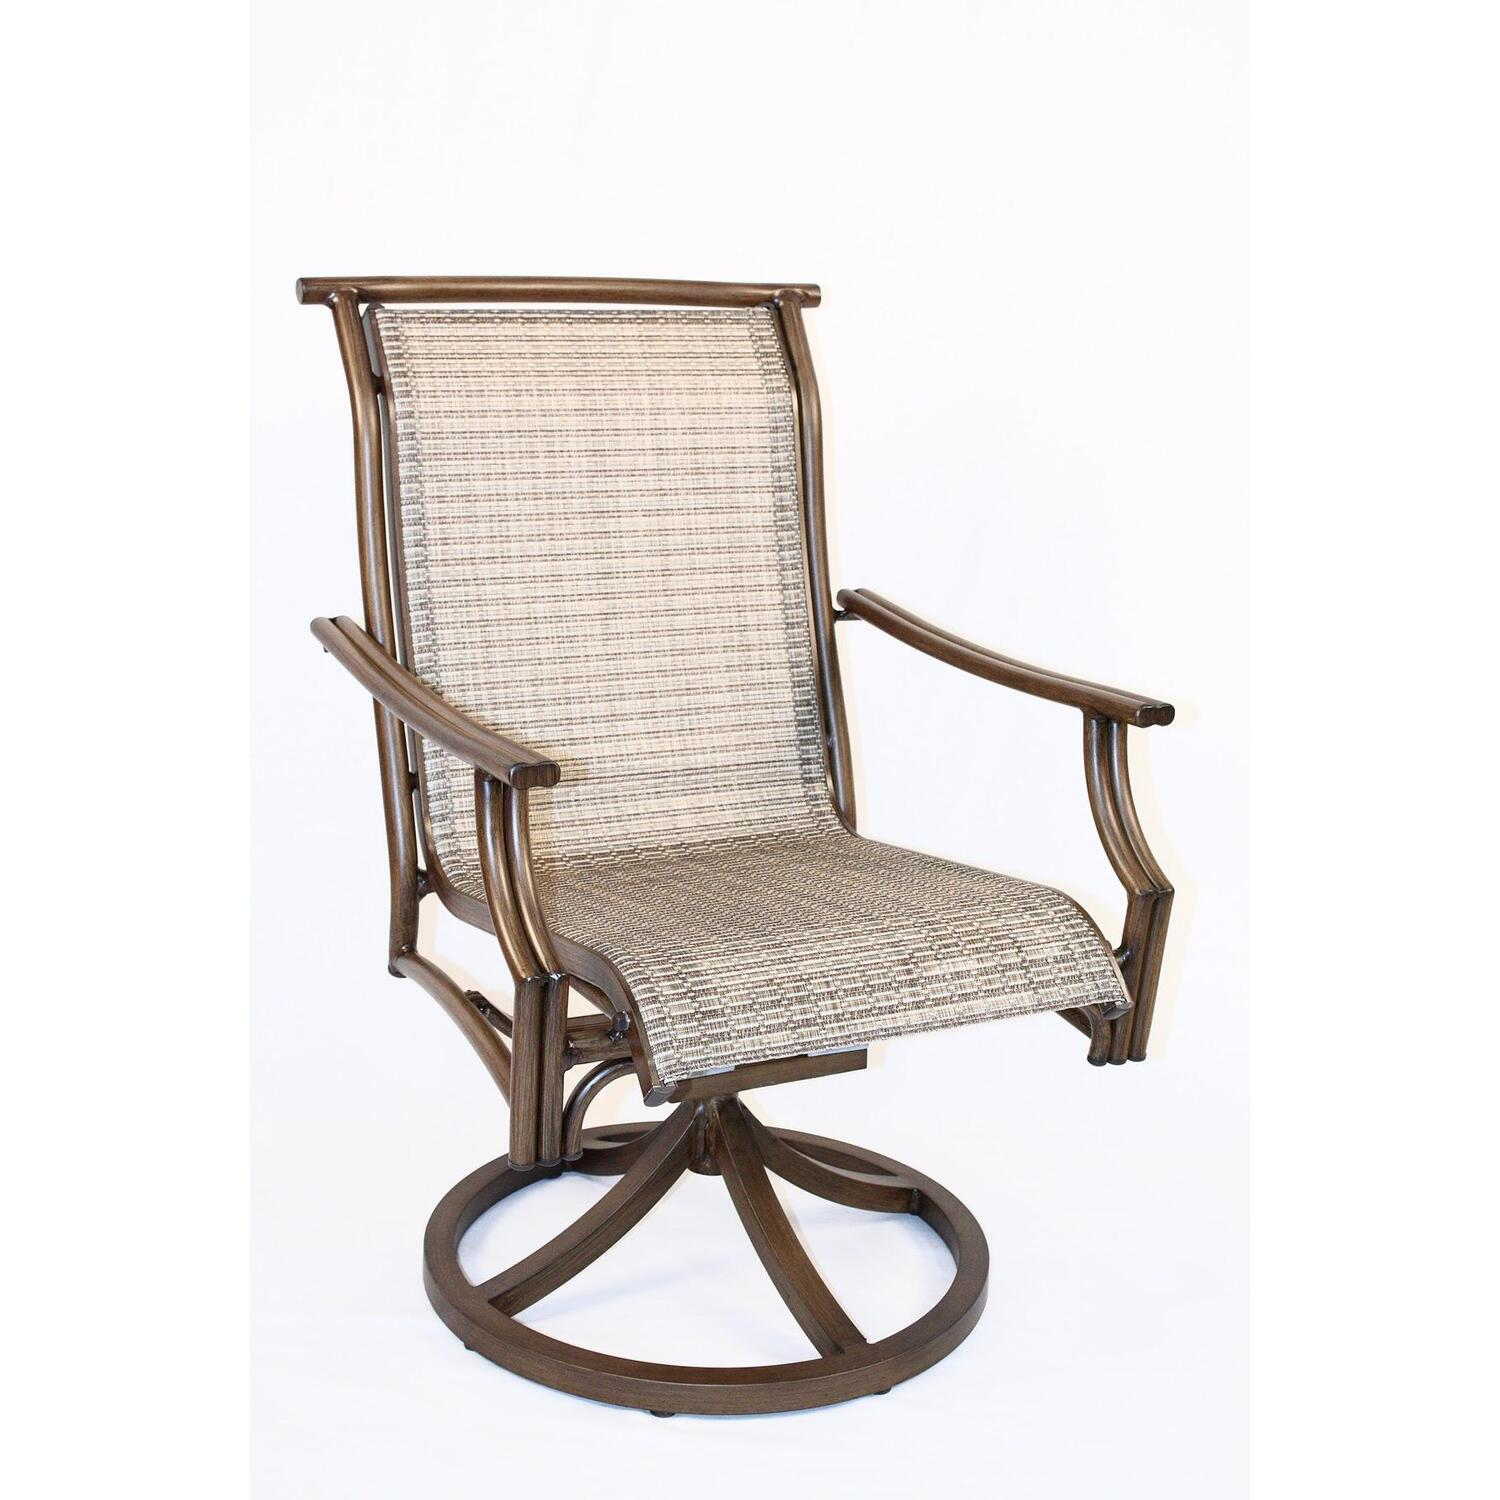 wicker swivel outdoor dining chair room with arms covers hospitality rattan sling patio rocking